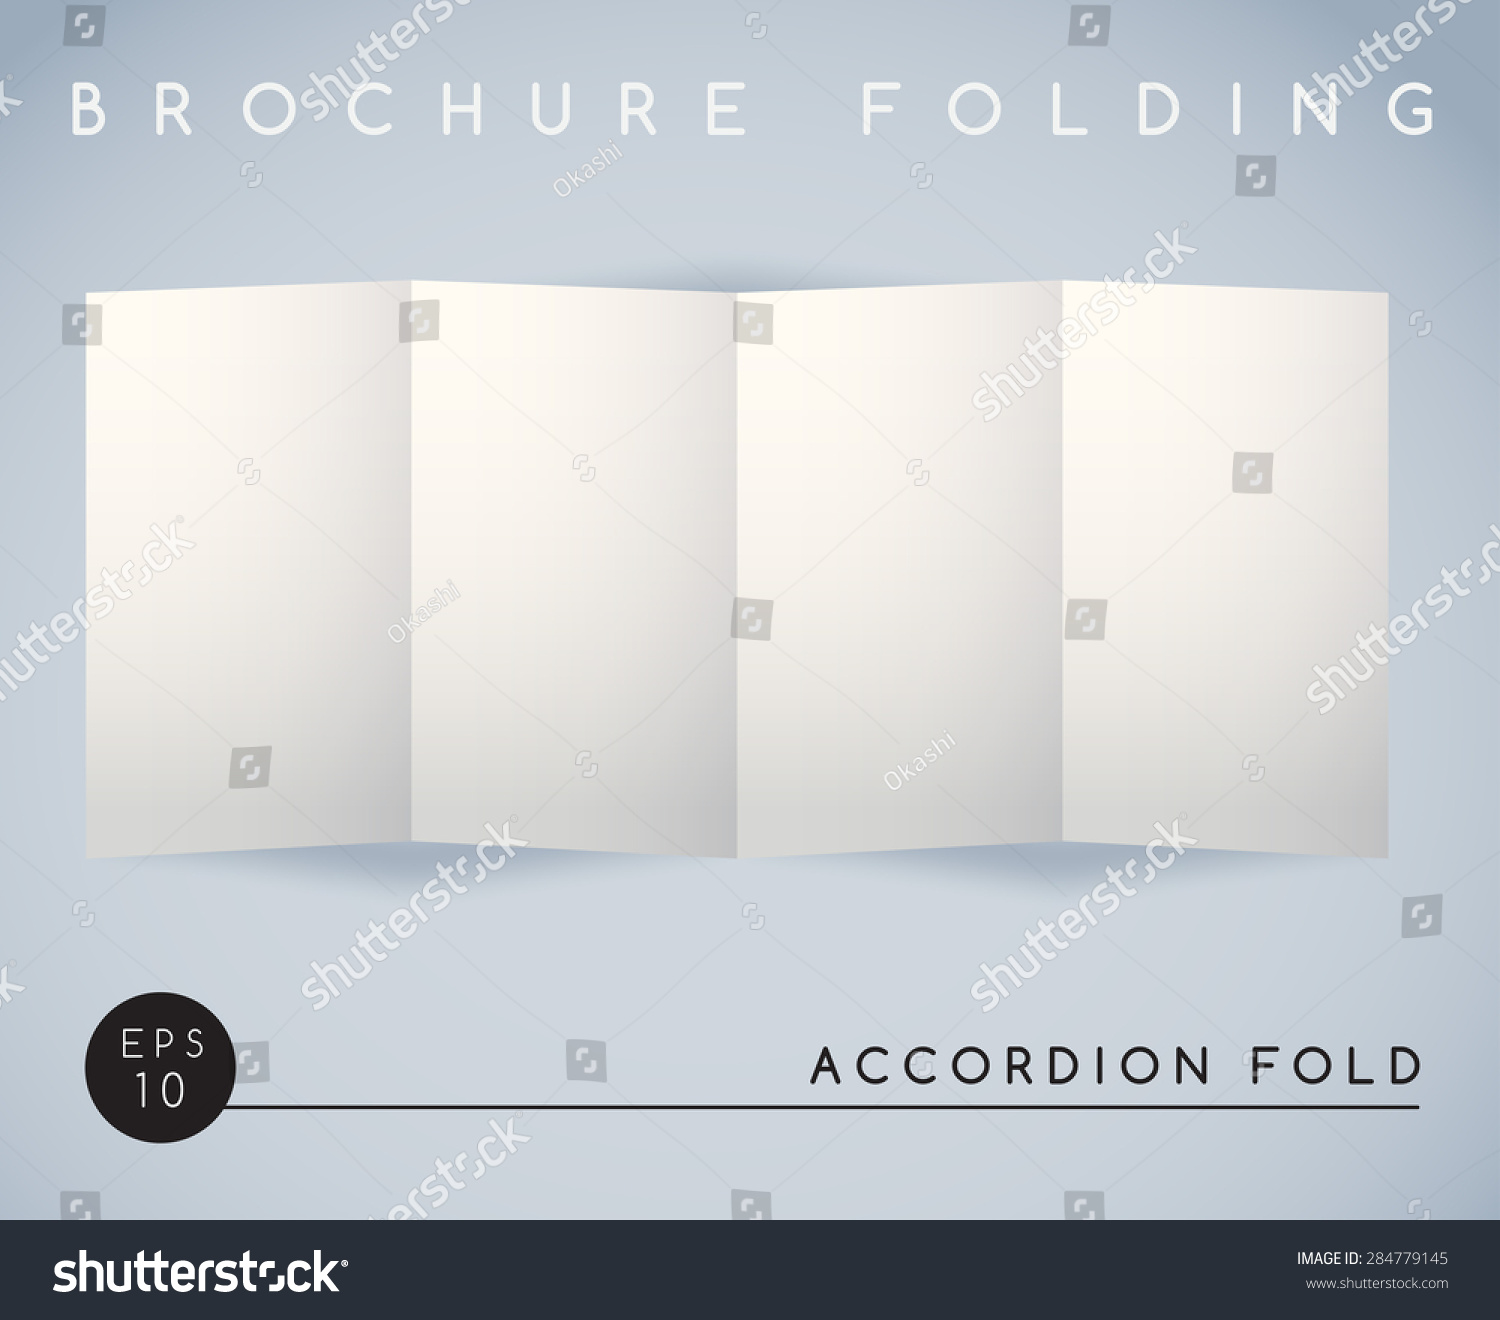 Brochure folding accordion fold 4 panel vector for Accordion fold brochure template